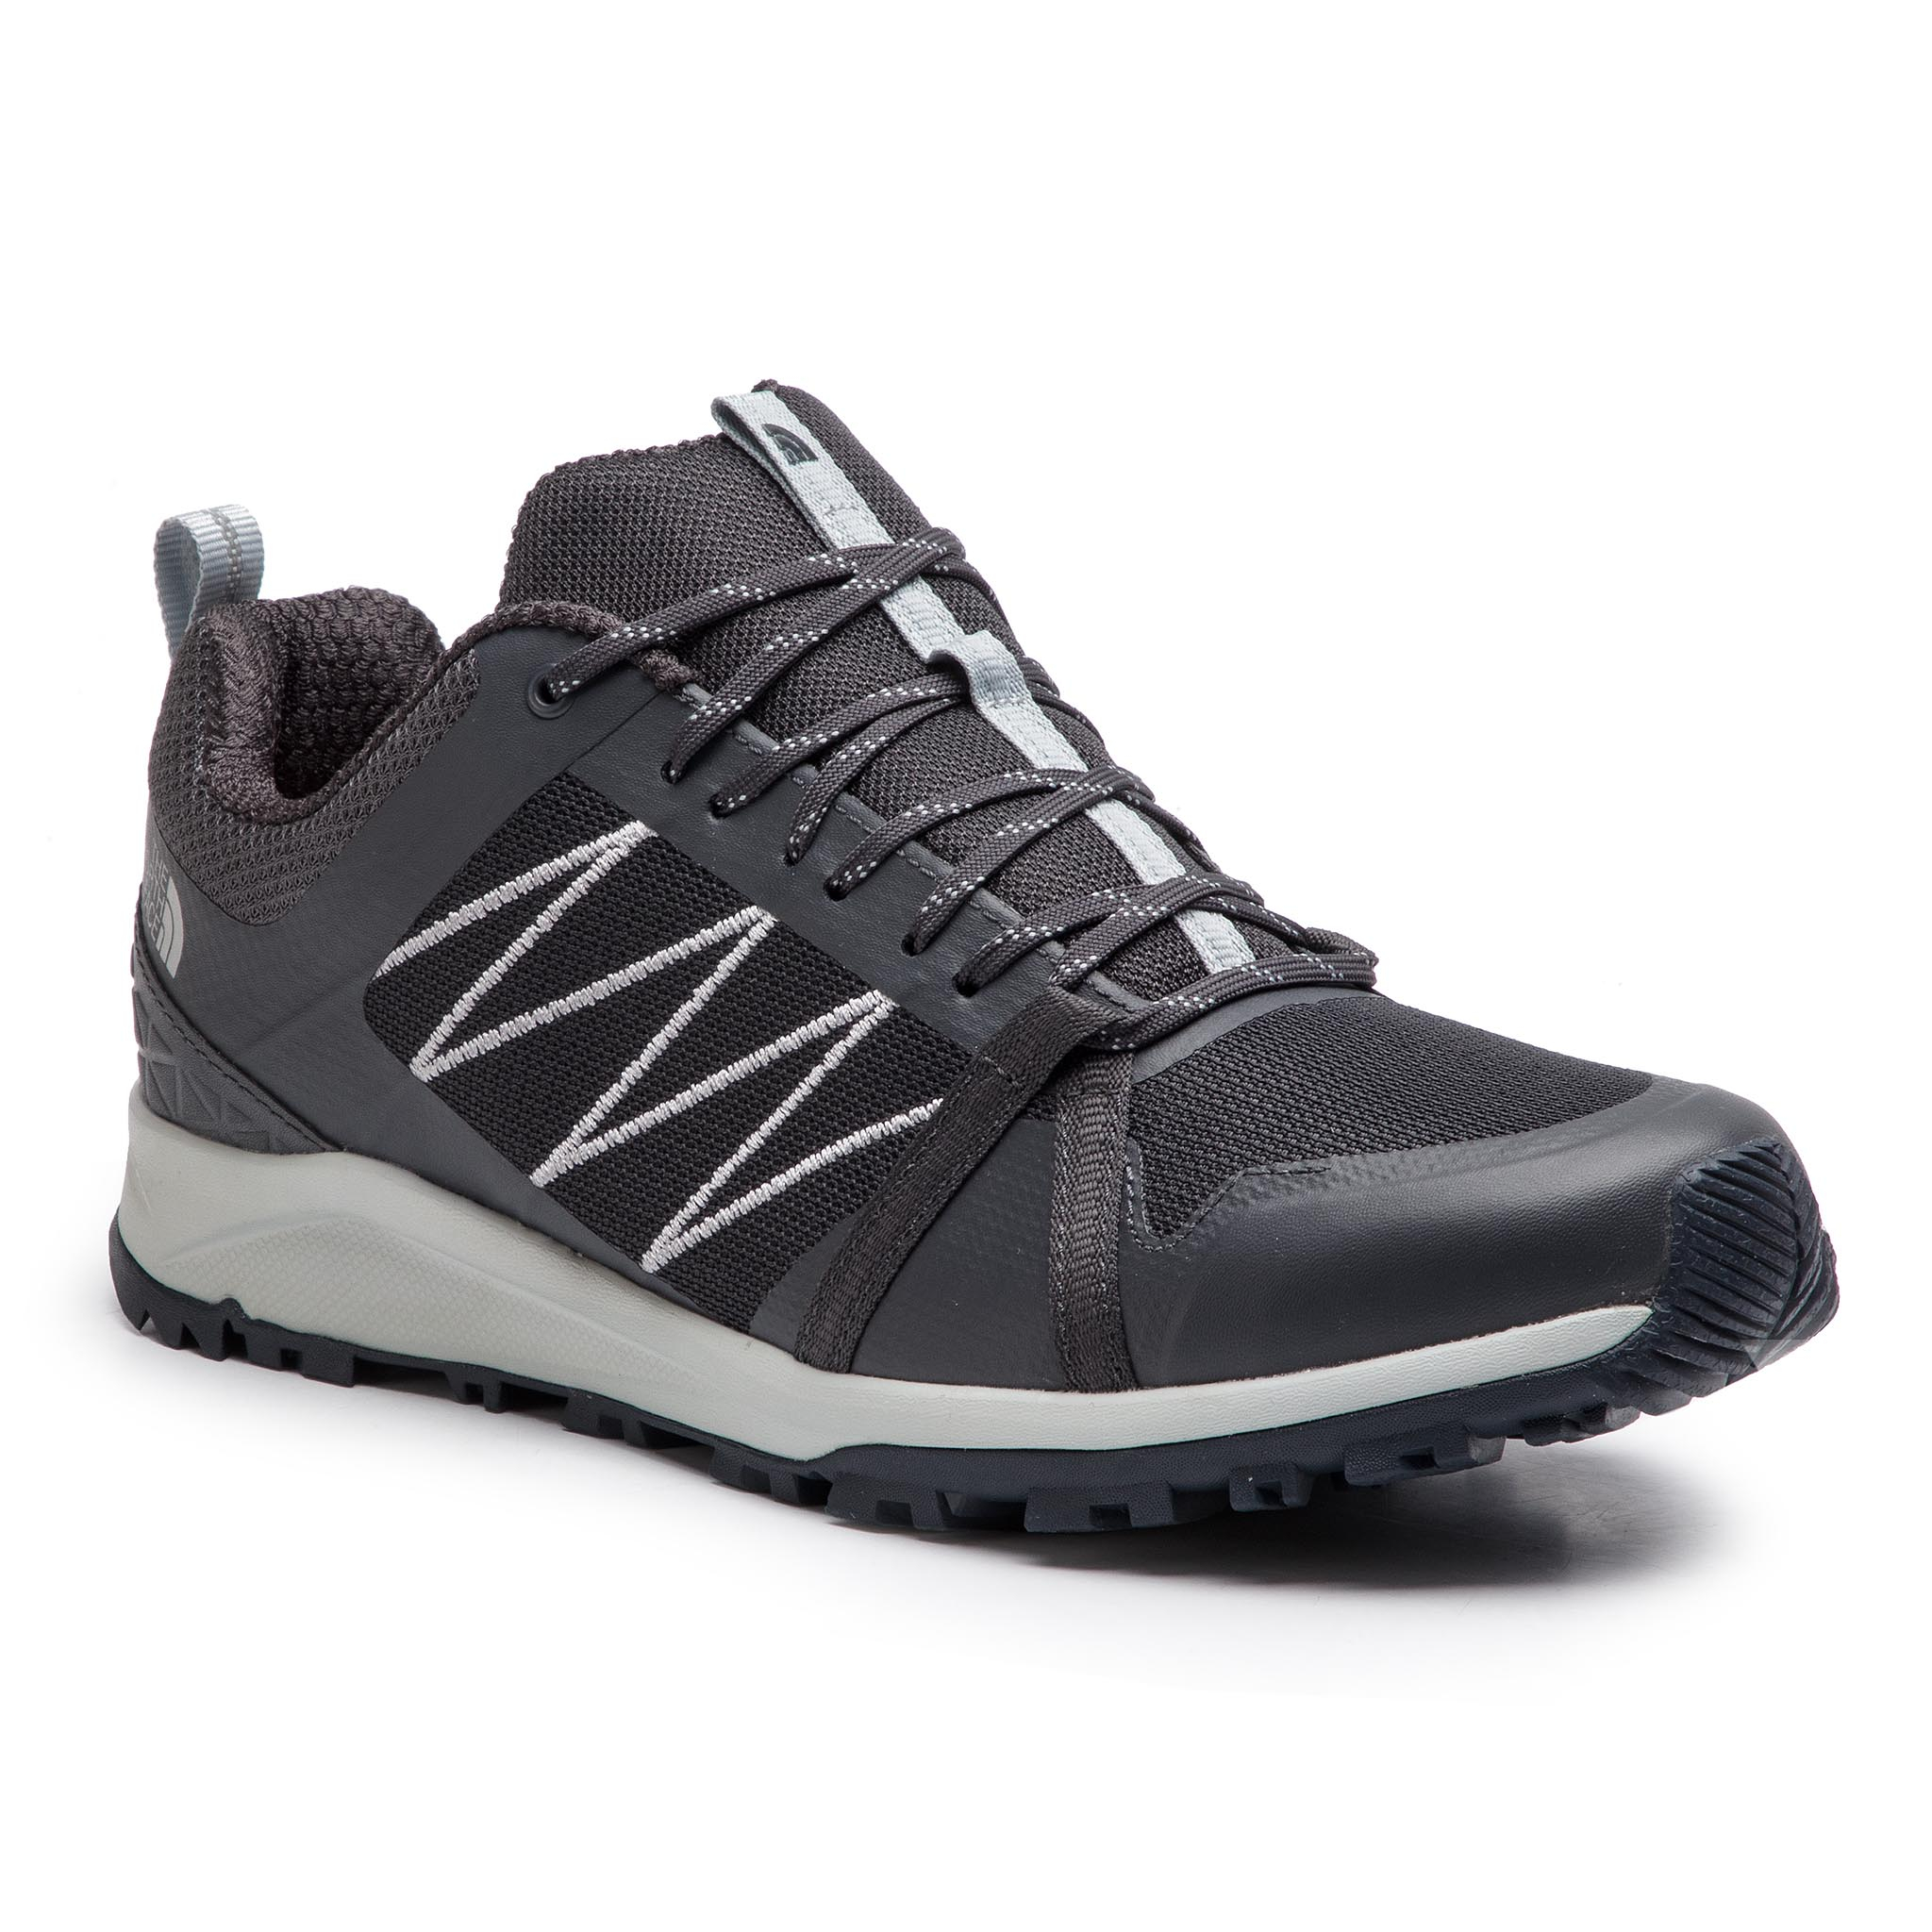 Trekkings THE NORTH FACE - Litewave Fastpack II T93REFC4I Ebony Grey/High Rise Grey